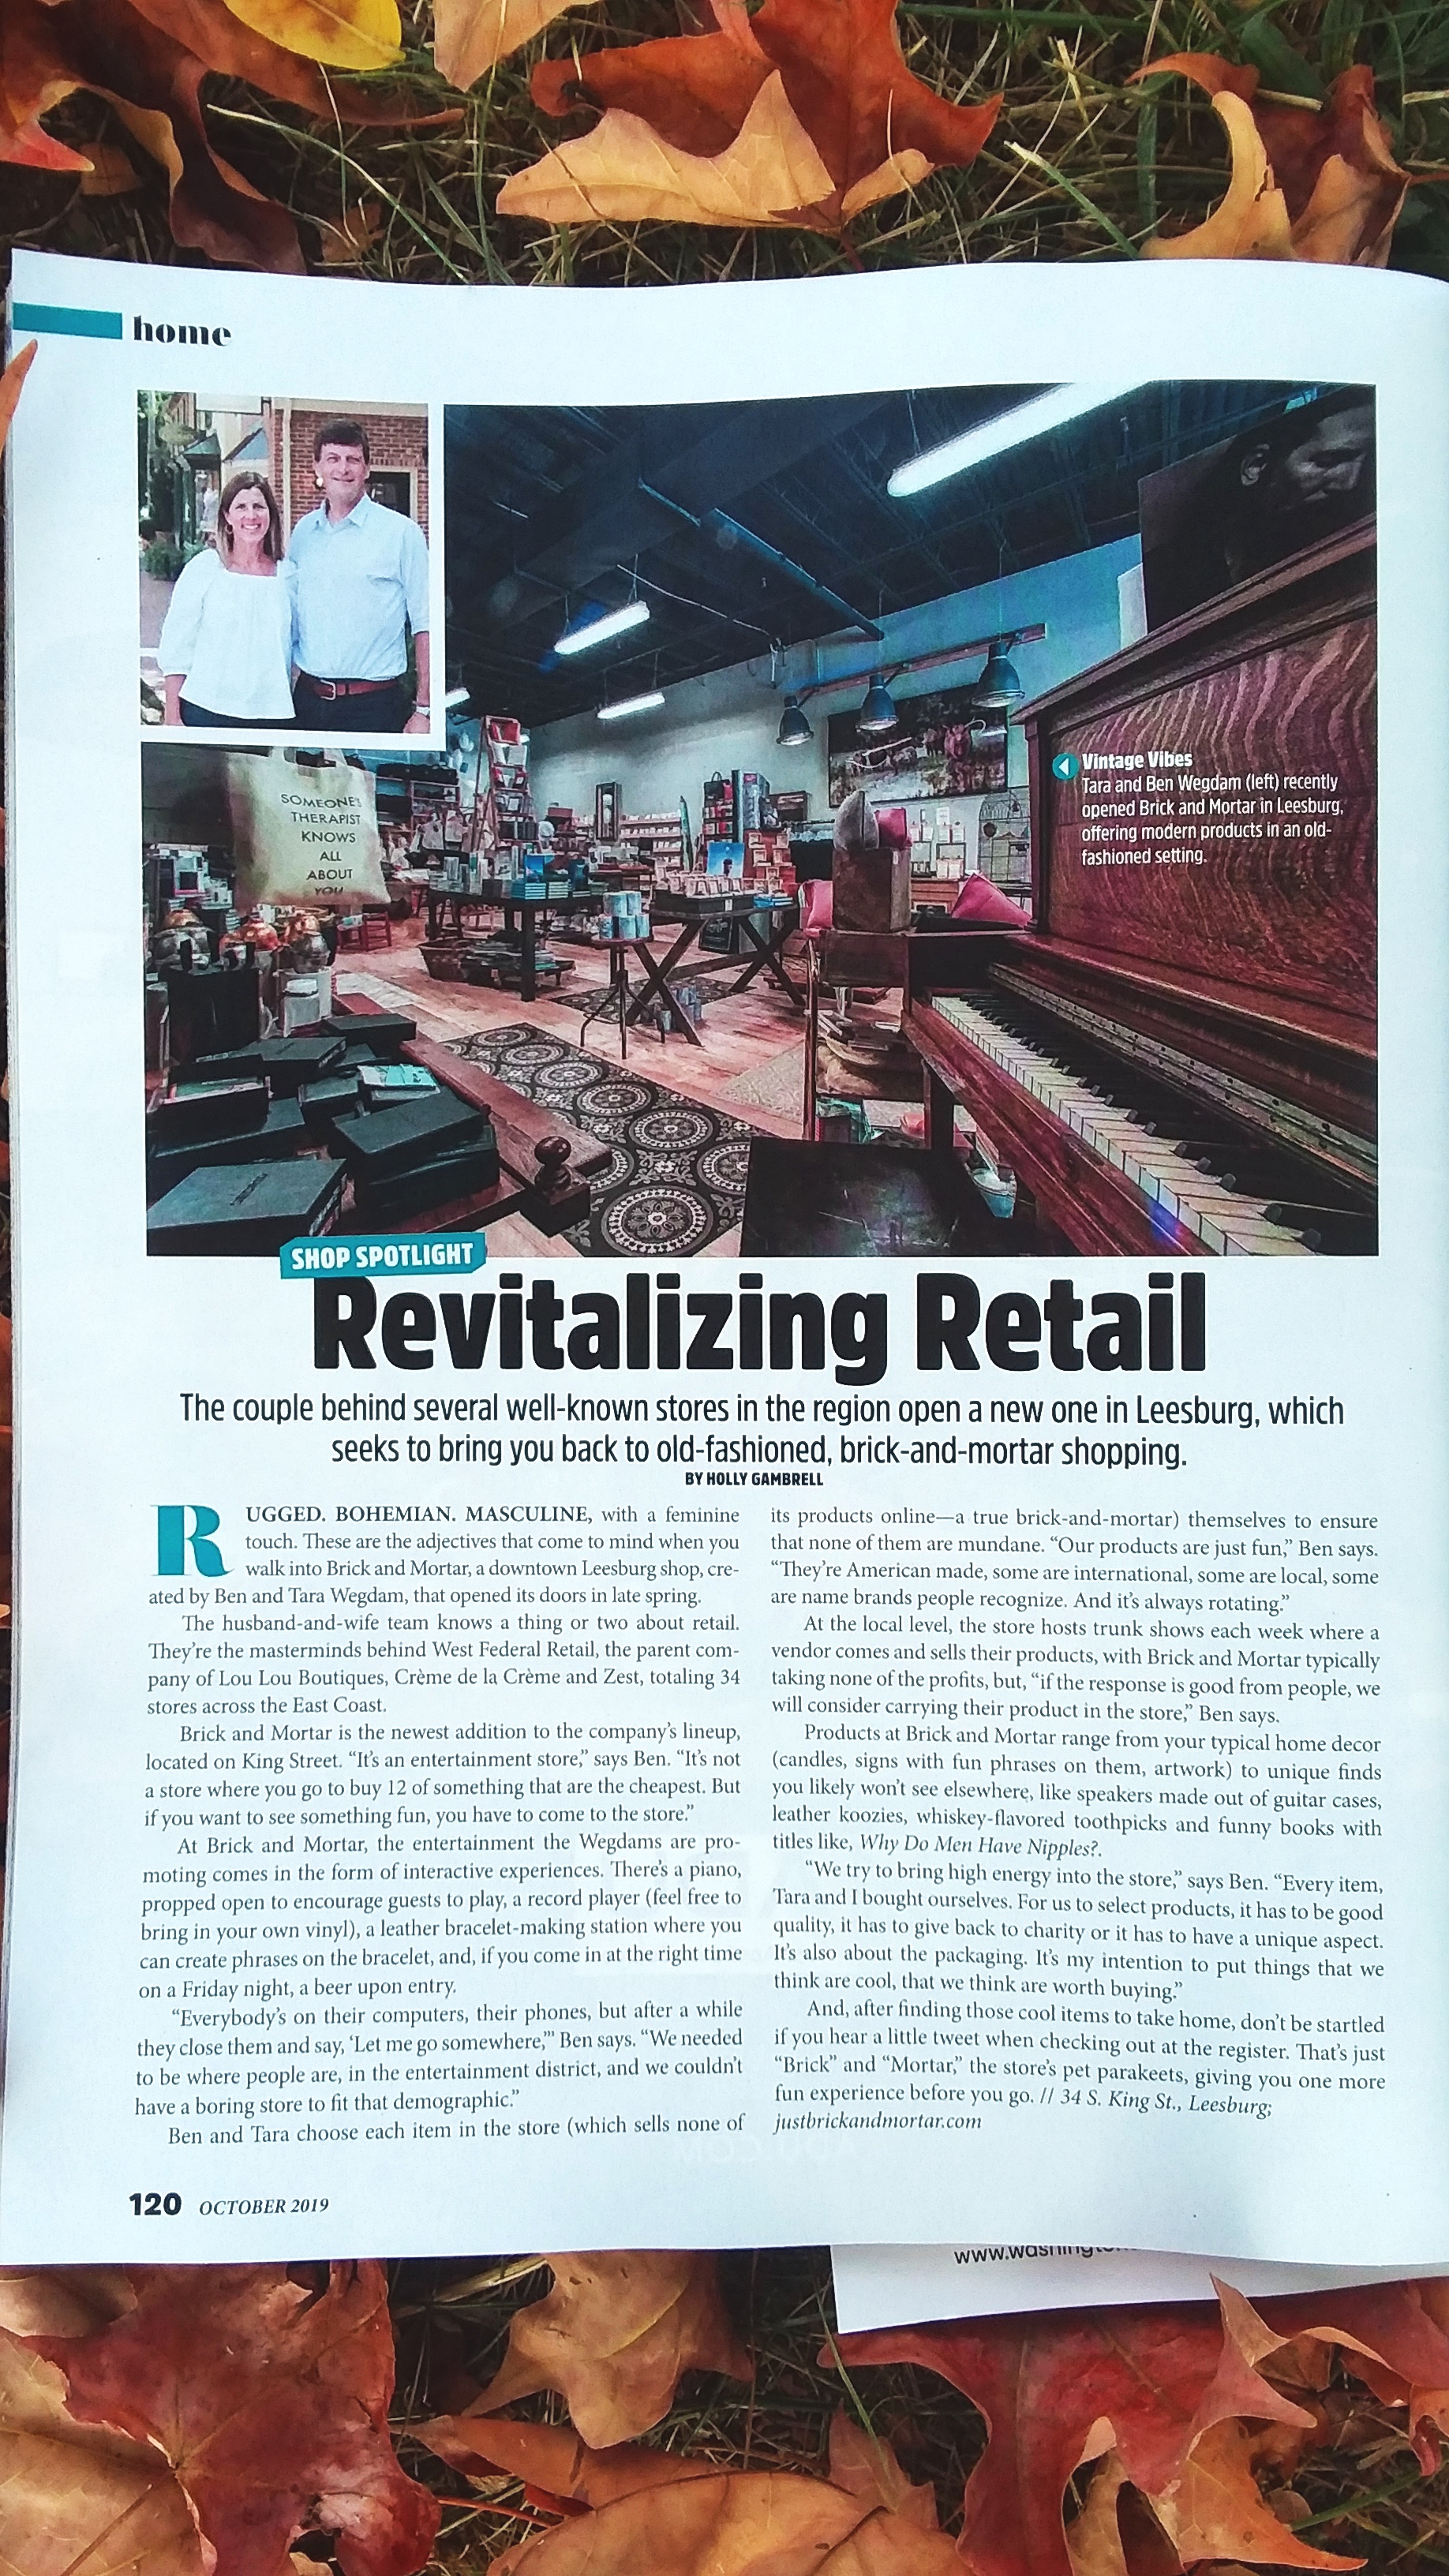 IN THE NEWS - We are honored to be featured in the October issue of Northern Virginia Magazine. Virginia will always be home and we are proud to be a part of the downtown Leesburg community. As stated in the article, it is our goal to bring high energy into the store and create a fun shopping environment that is unparallel in Northern VA.